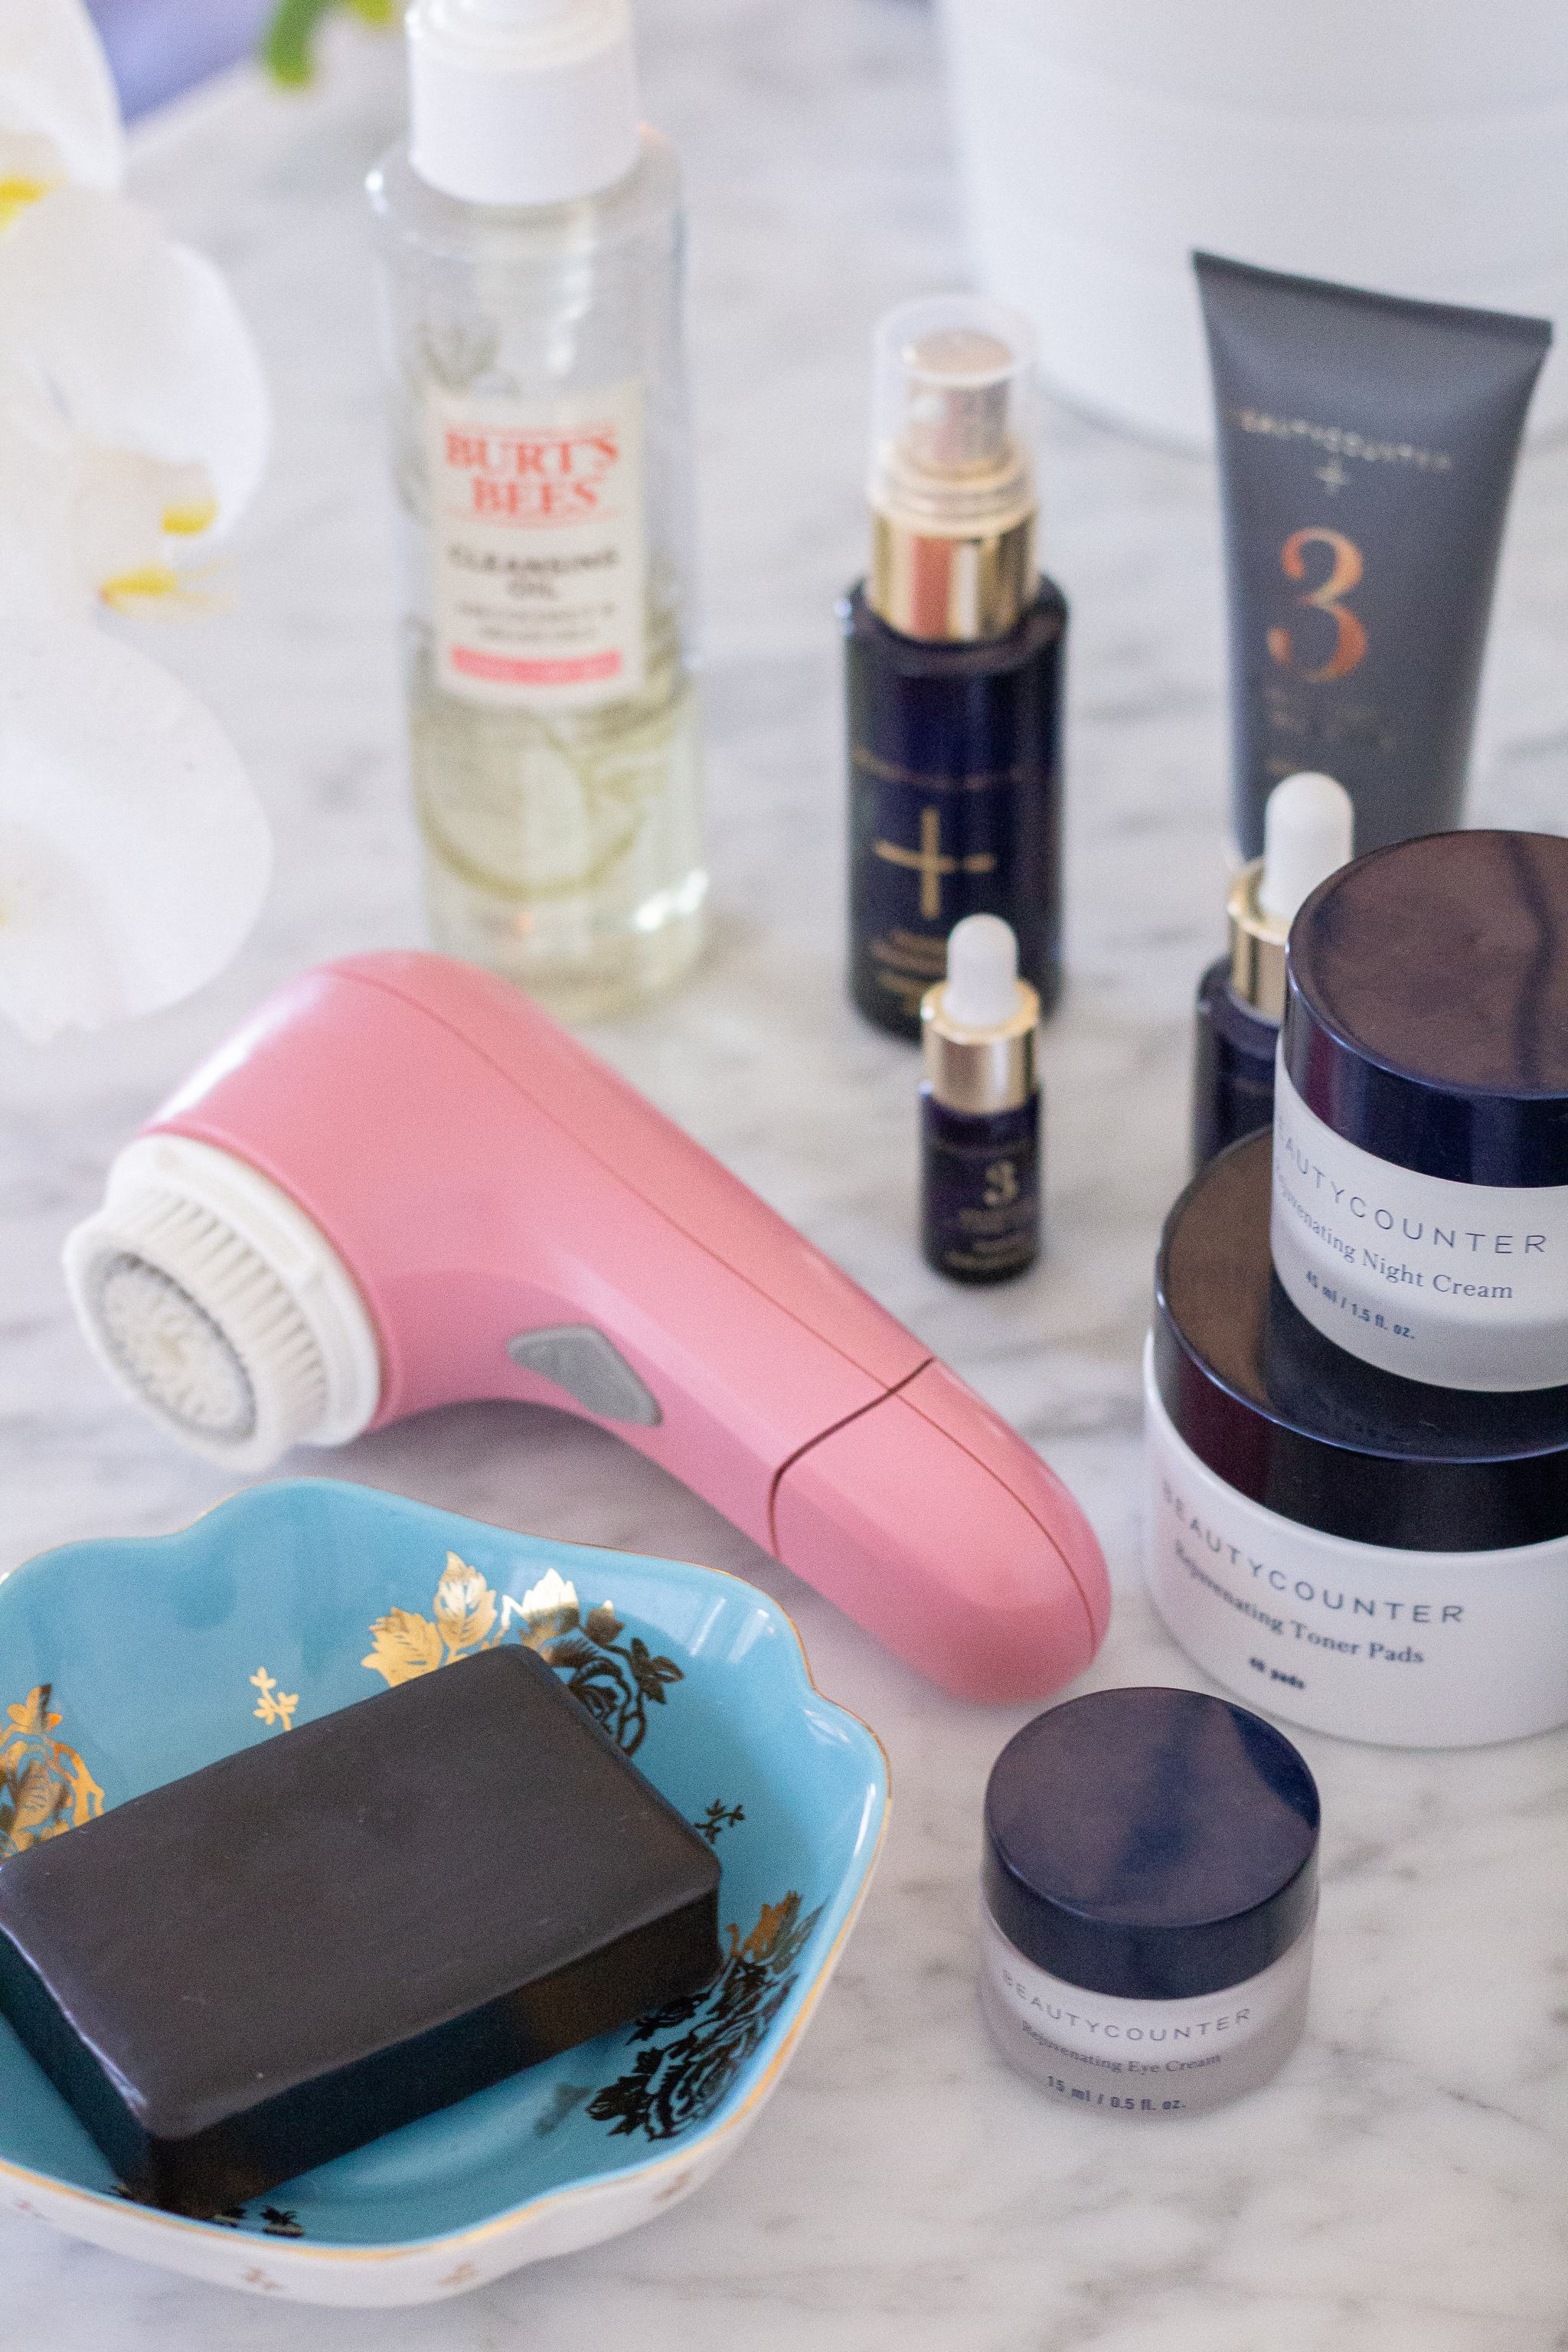 night time skin care routine - beautycounter - best night time skin products - overnight resurfacing peel - the best night cream for anti aging - beautycounter product review - beautycounter products - beautycounter reviews - beautycounter charcoal mask